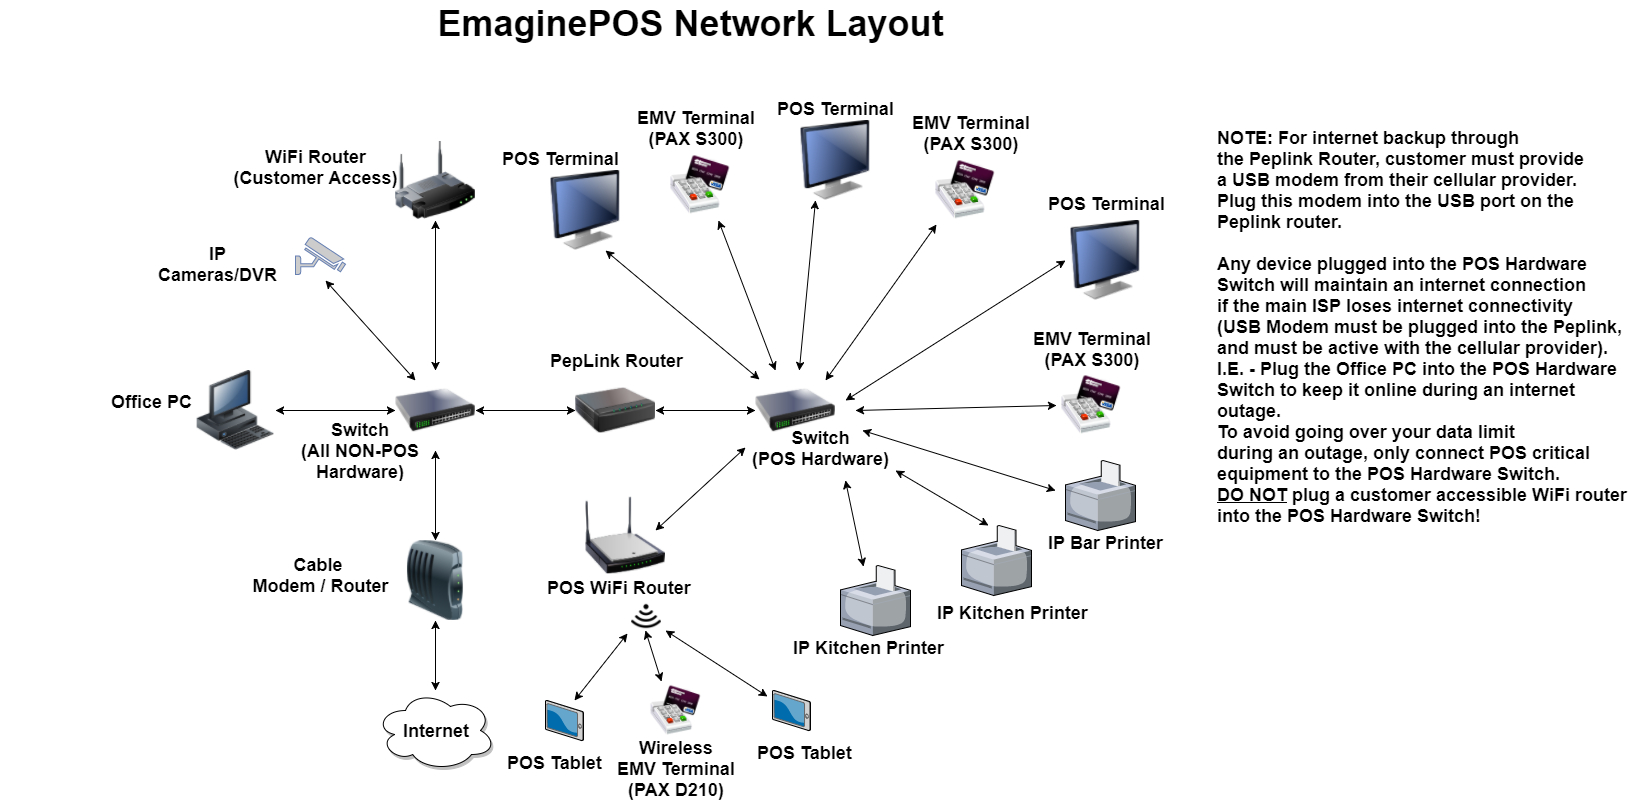 Network Diagram / Wiring Diagram - Emaginepos Help Docs - Network Wiring Diagram